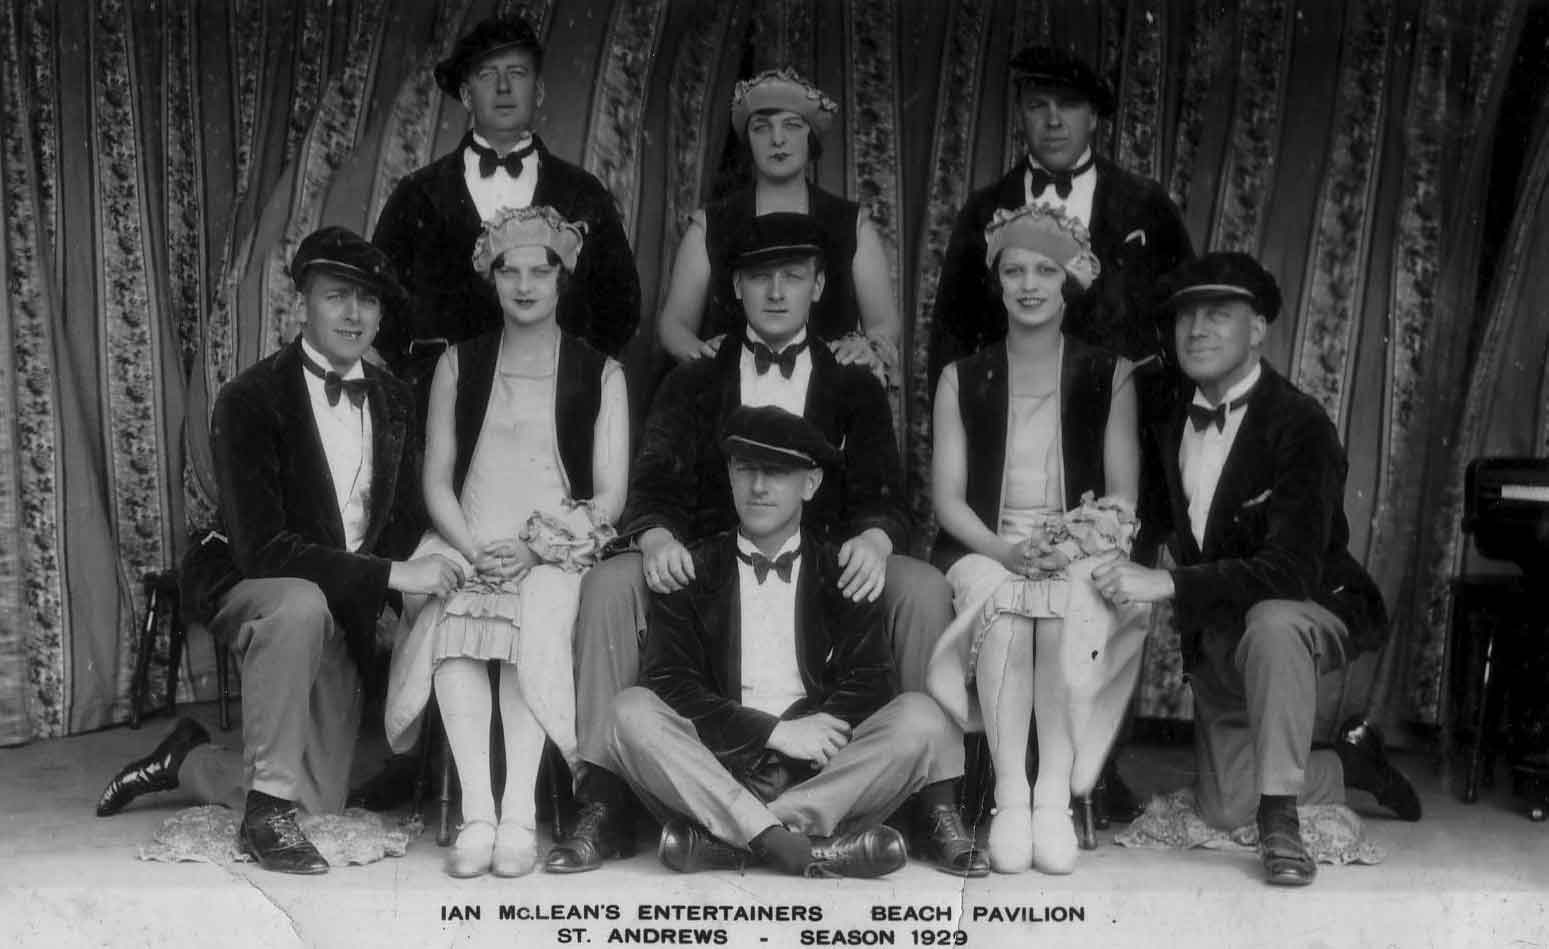 Publicity Shot Of The Ian McLean Entertainers 1929